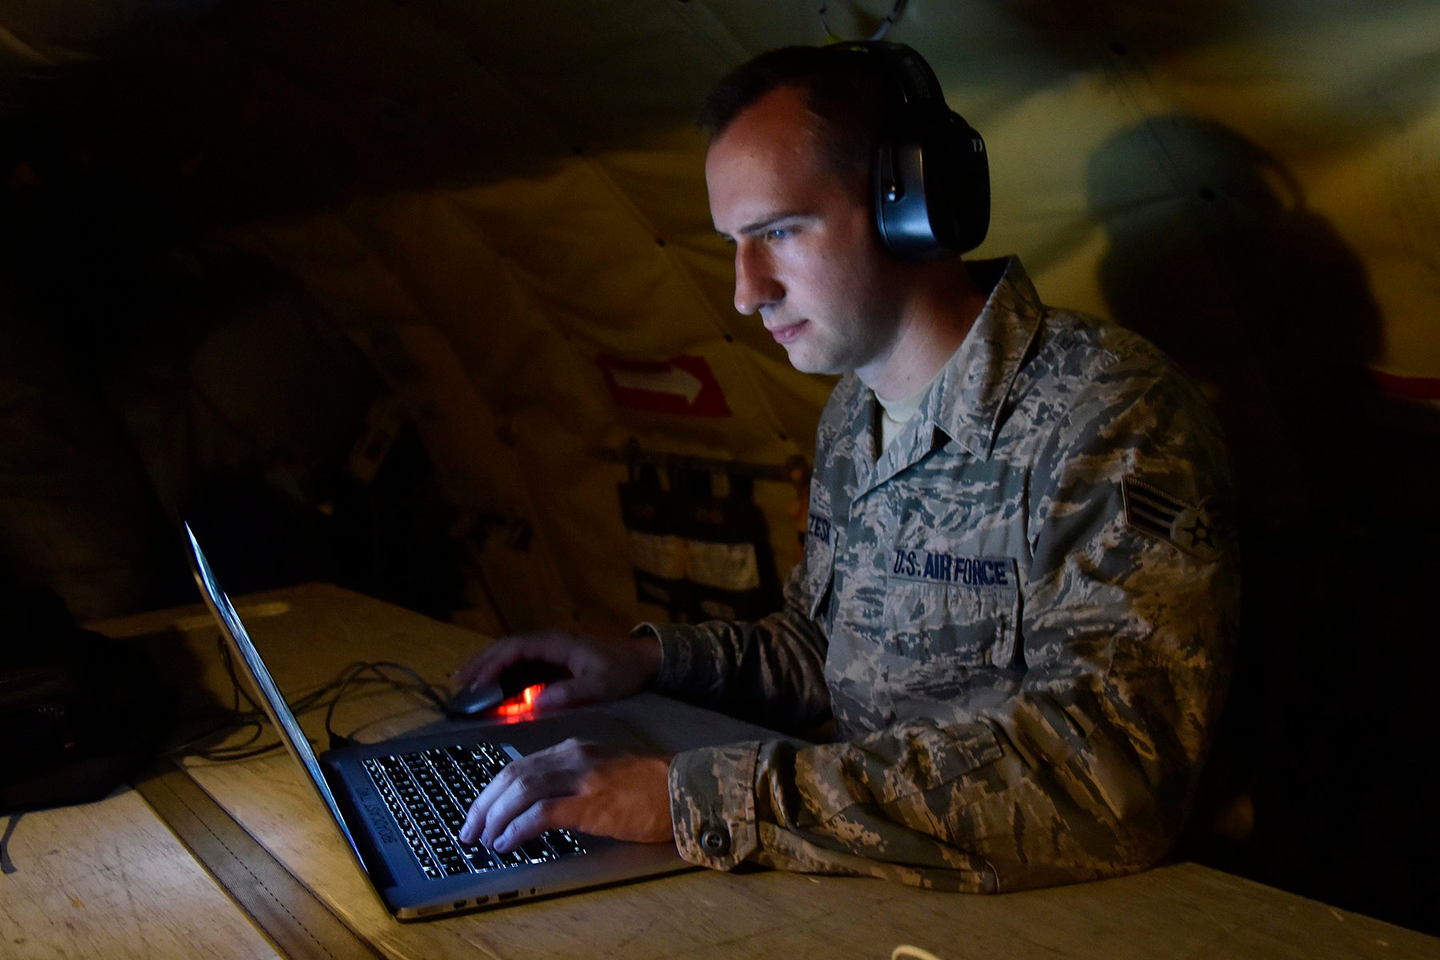 Senior Airman Ryan Zeski uses time during a long flight to work on some homework for a course he is taking at Oakland University.